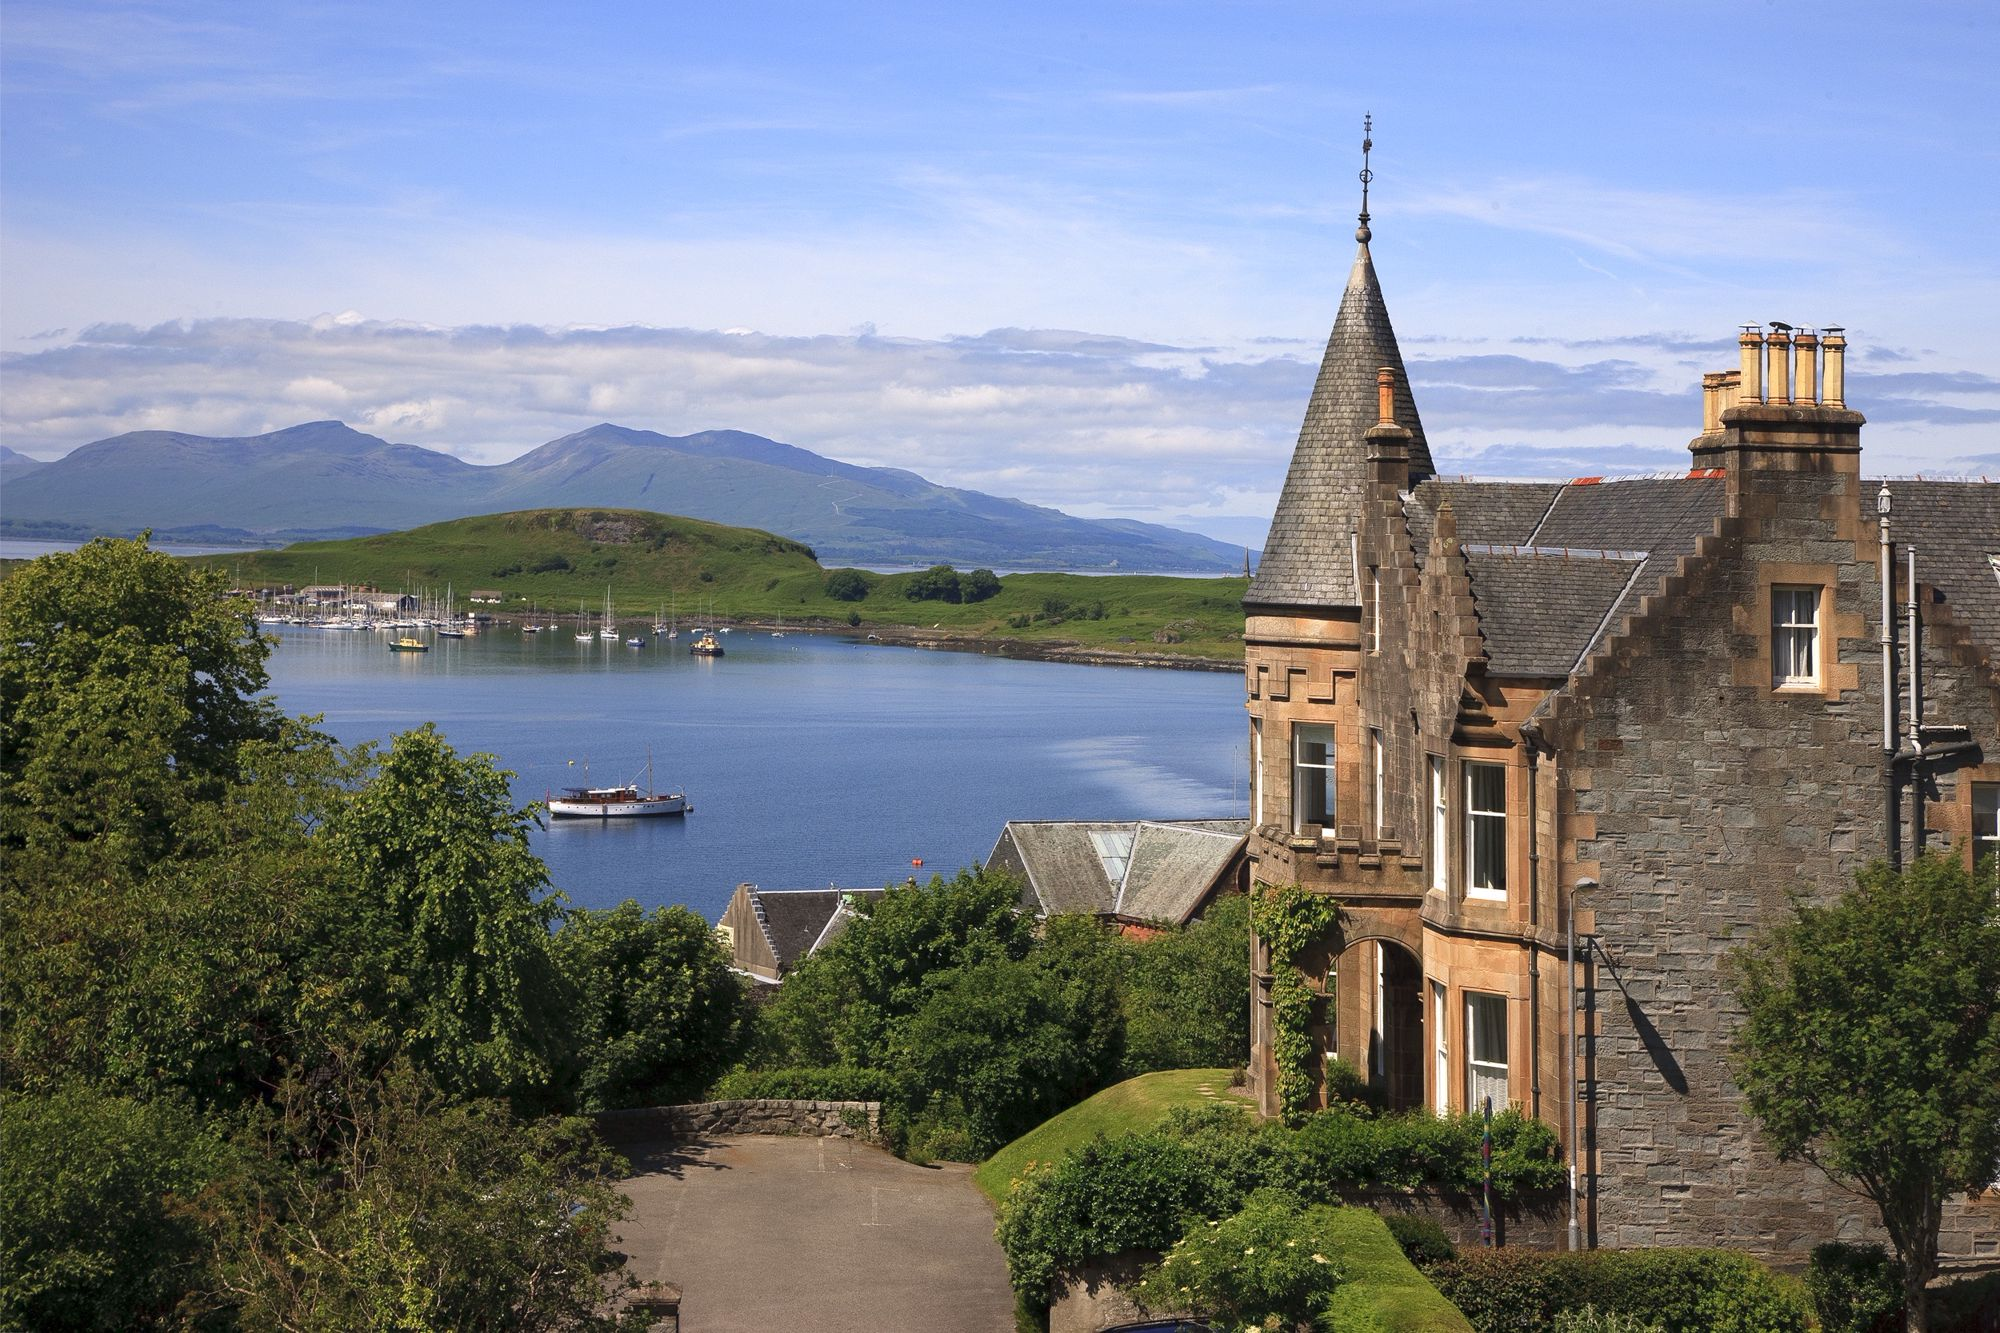 Hotels, Cottages, B&Bs & Glamping in Argyll & Bute